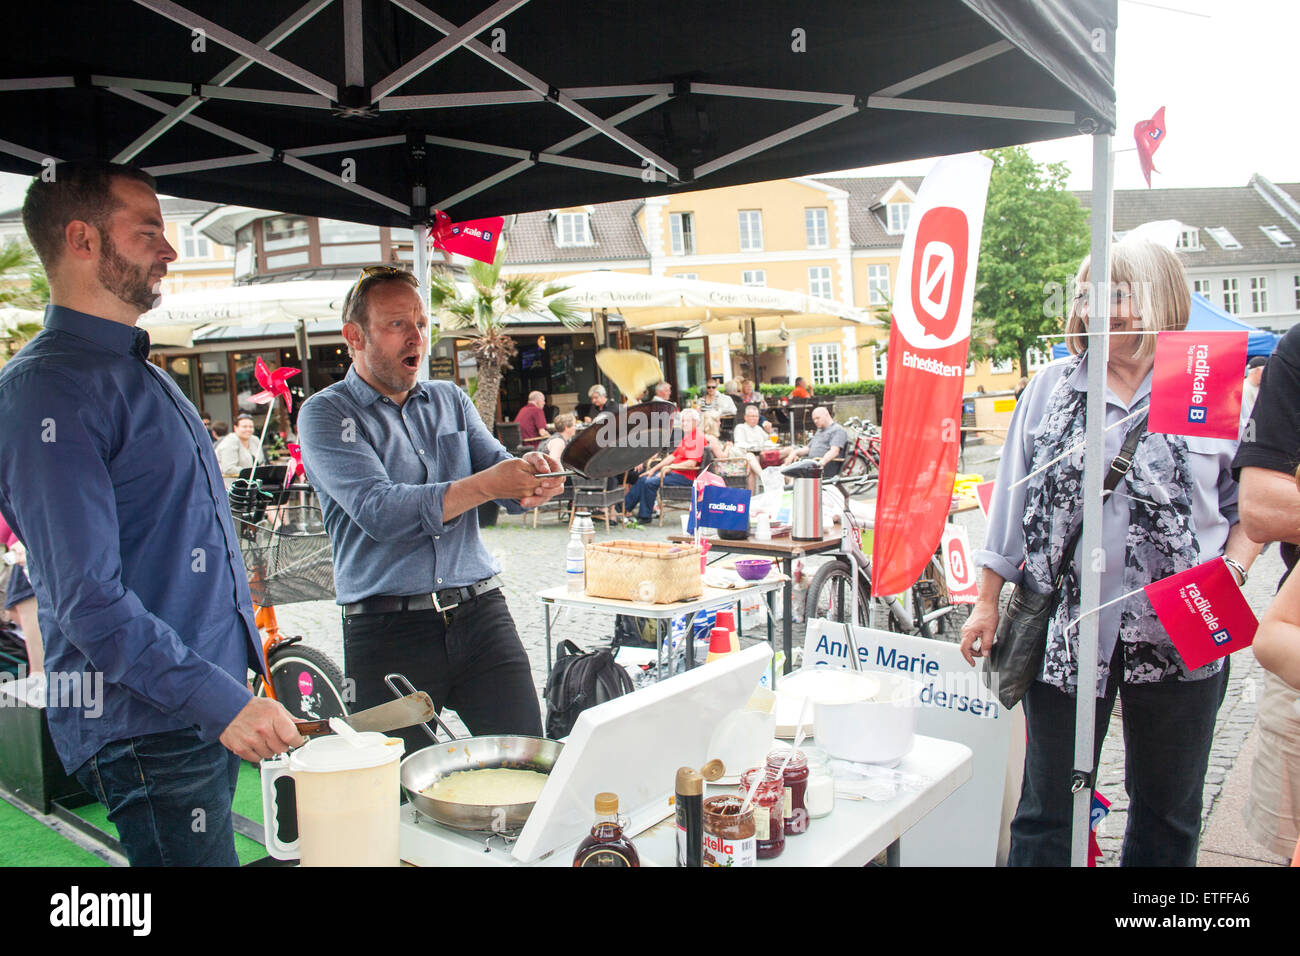 Hilleroed, Denmark, June 13th, 2015: Danish Morten Ostergaard (Deputy PM) (L) and Martin Lidegaard (Foreign Minister), - Stock Image